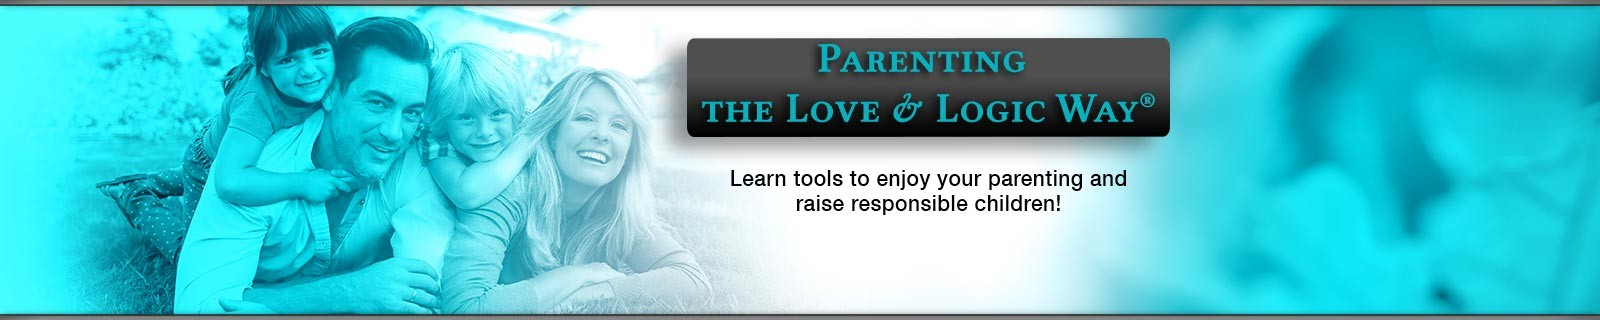 Parenting the Love & Logic Way®